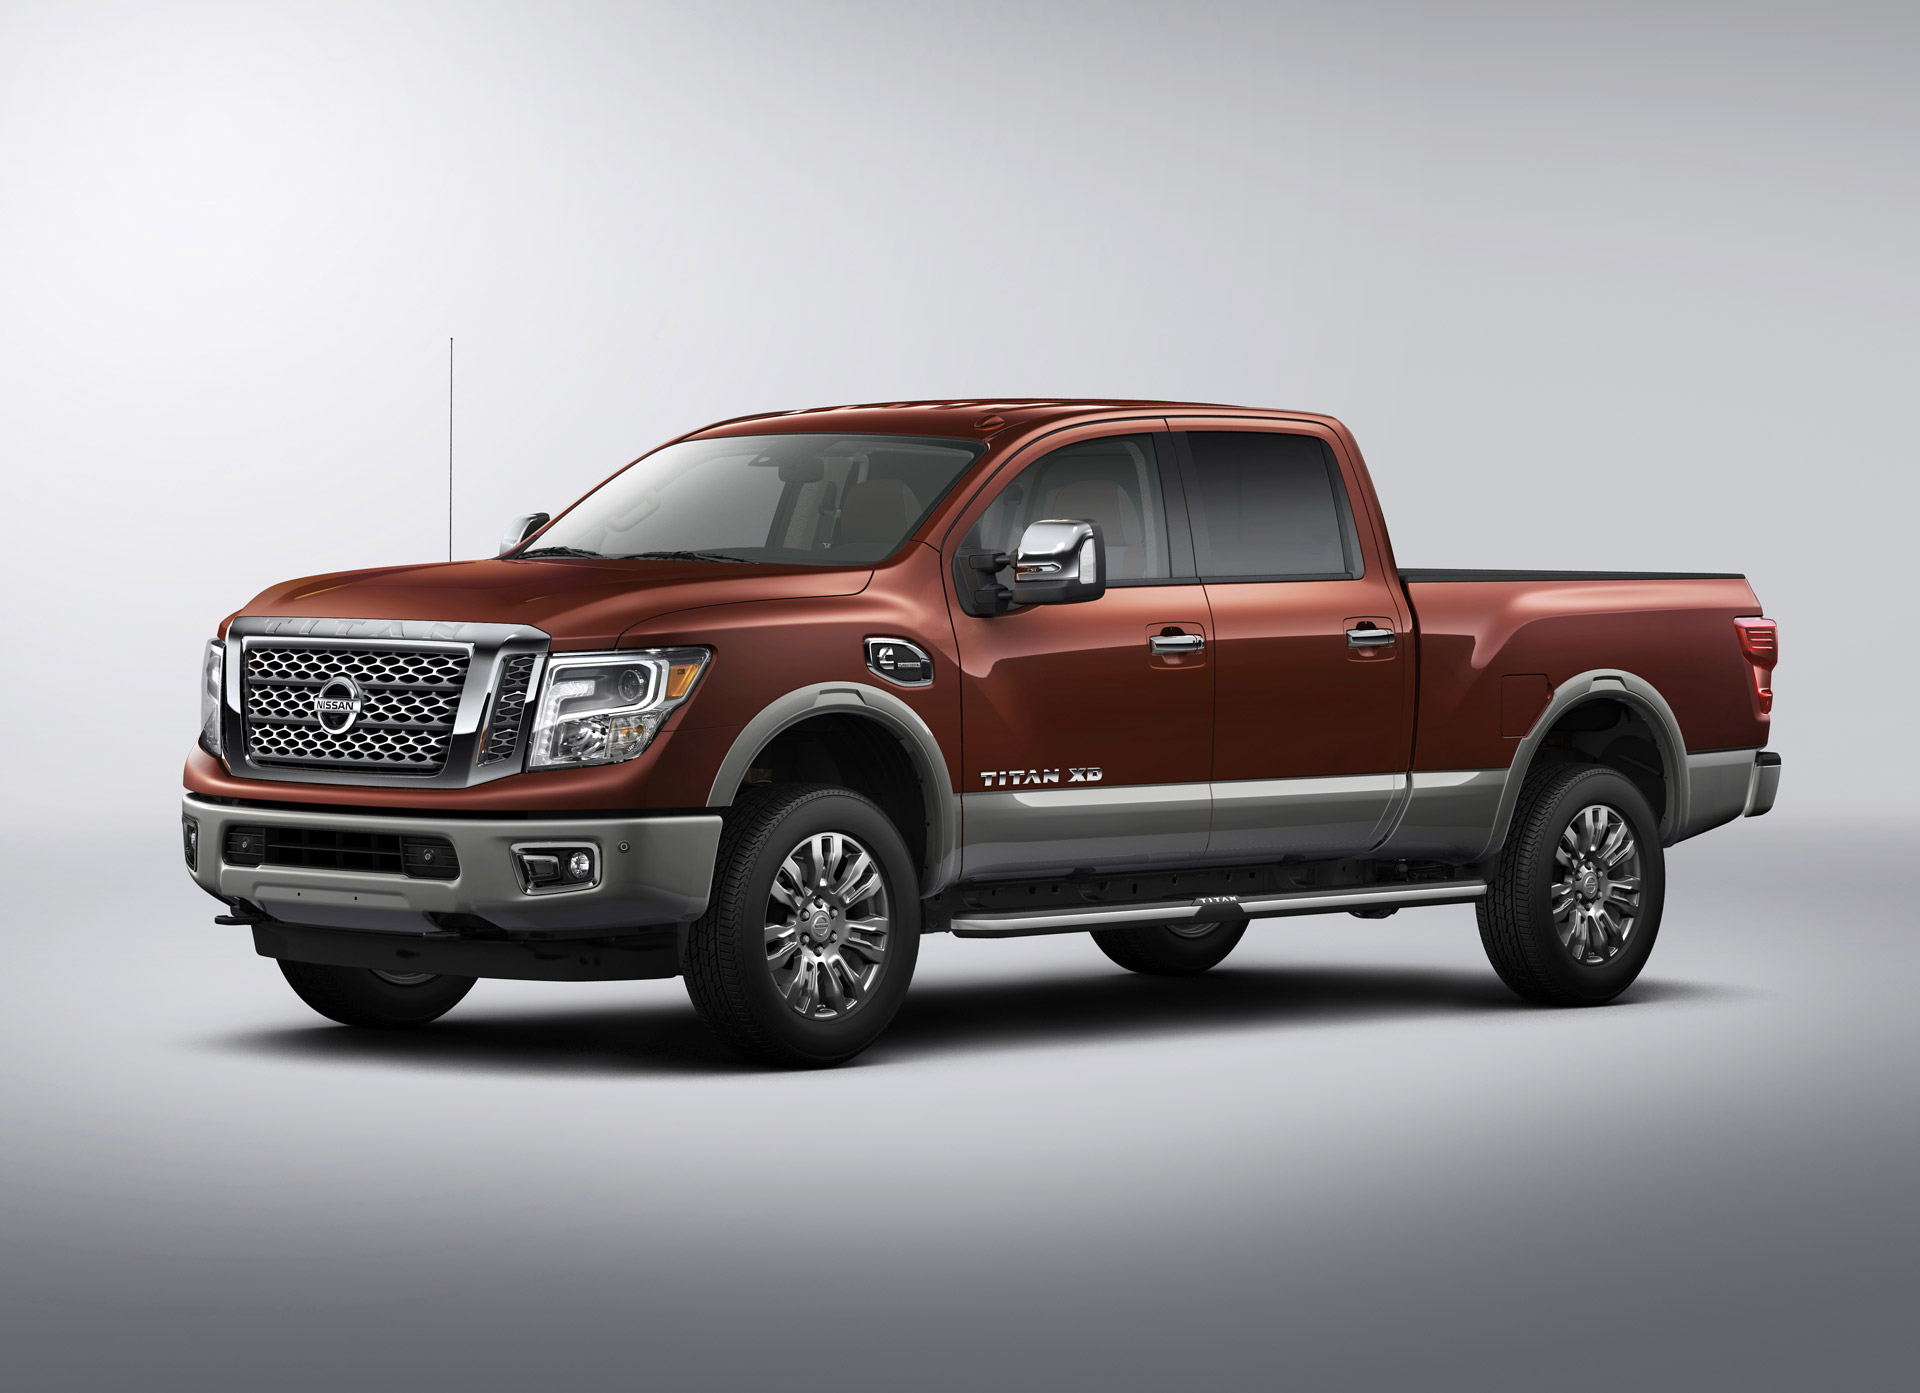 2016 nissan titan xd priced from 41 485. Black Bedroom Furniture Sets. Home Design Ideas